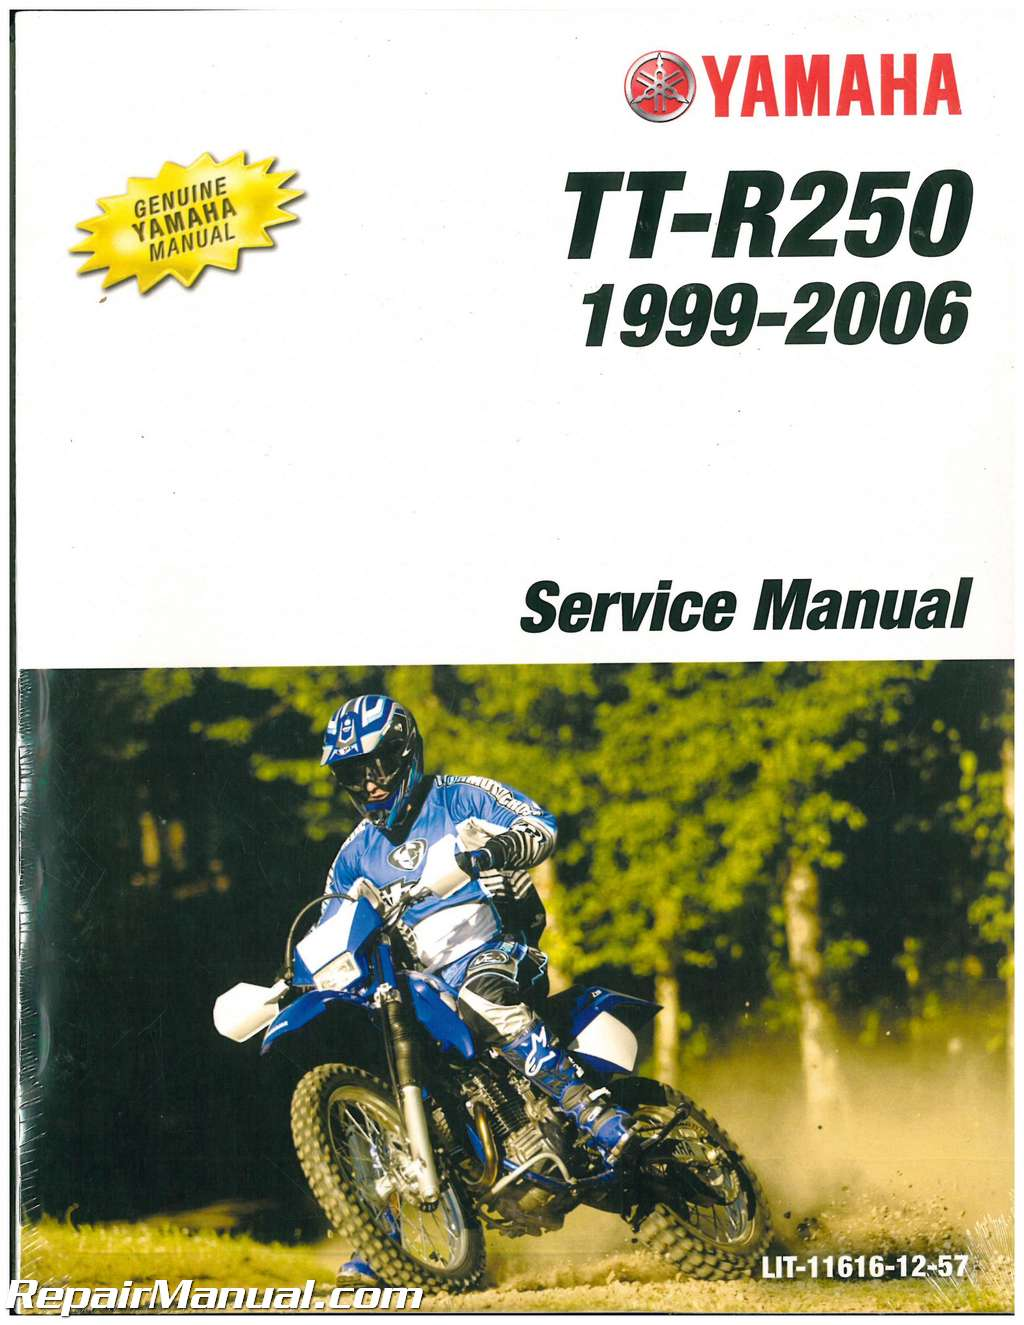 1999-2006-Yamaha-TTR250-Motorcycle-Service-Manual_001.jpg ...